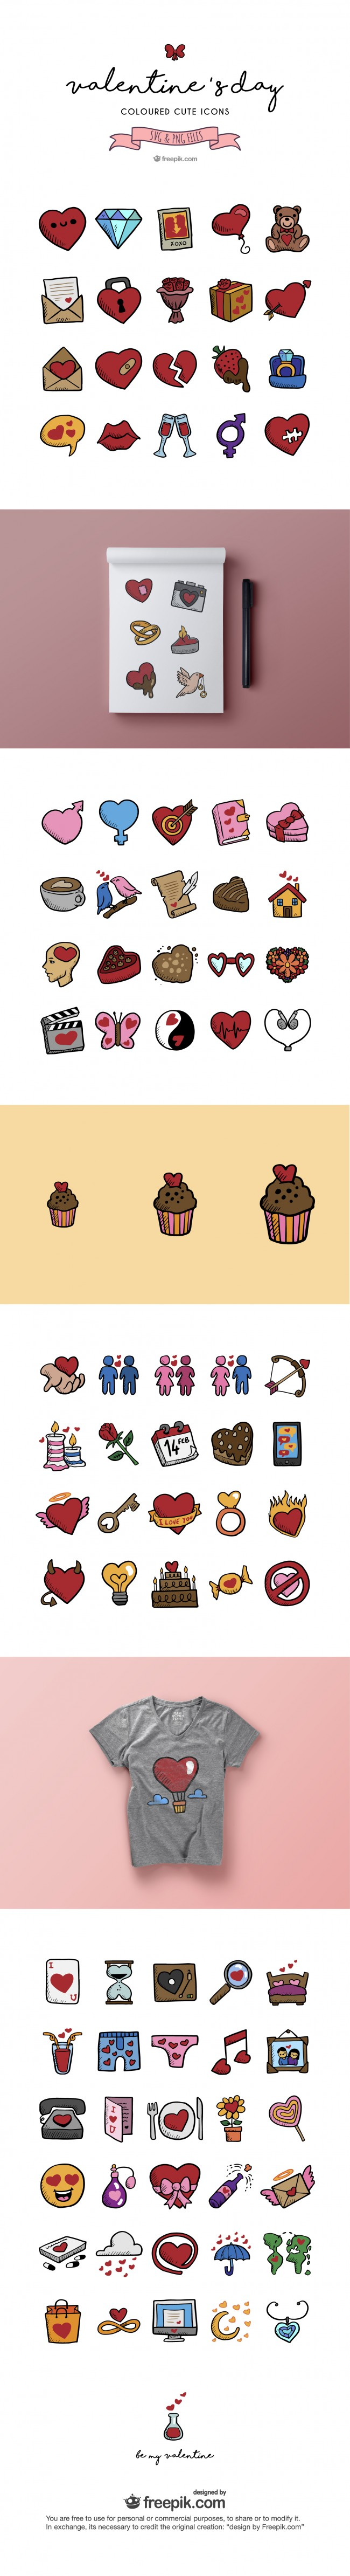 Hand drawn Valentines day icons 01 e1455297863702 80 Free cute valentines day icons